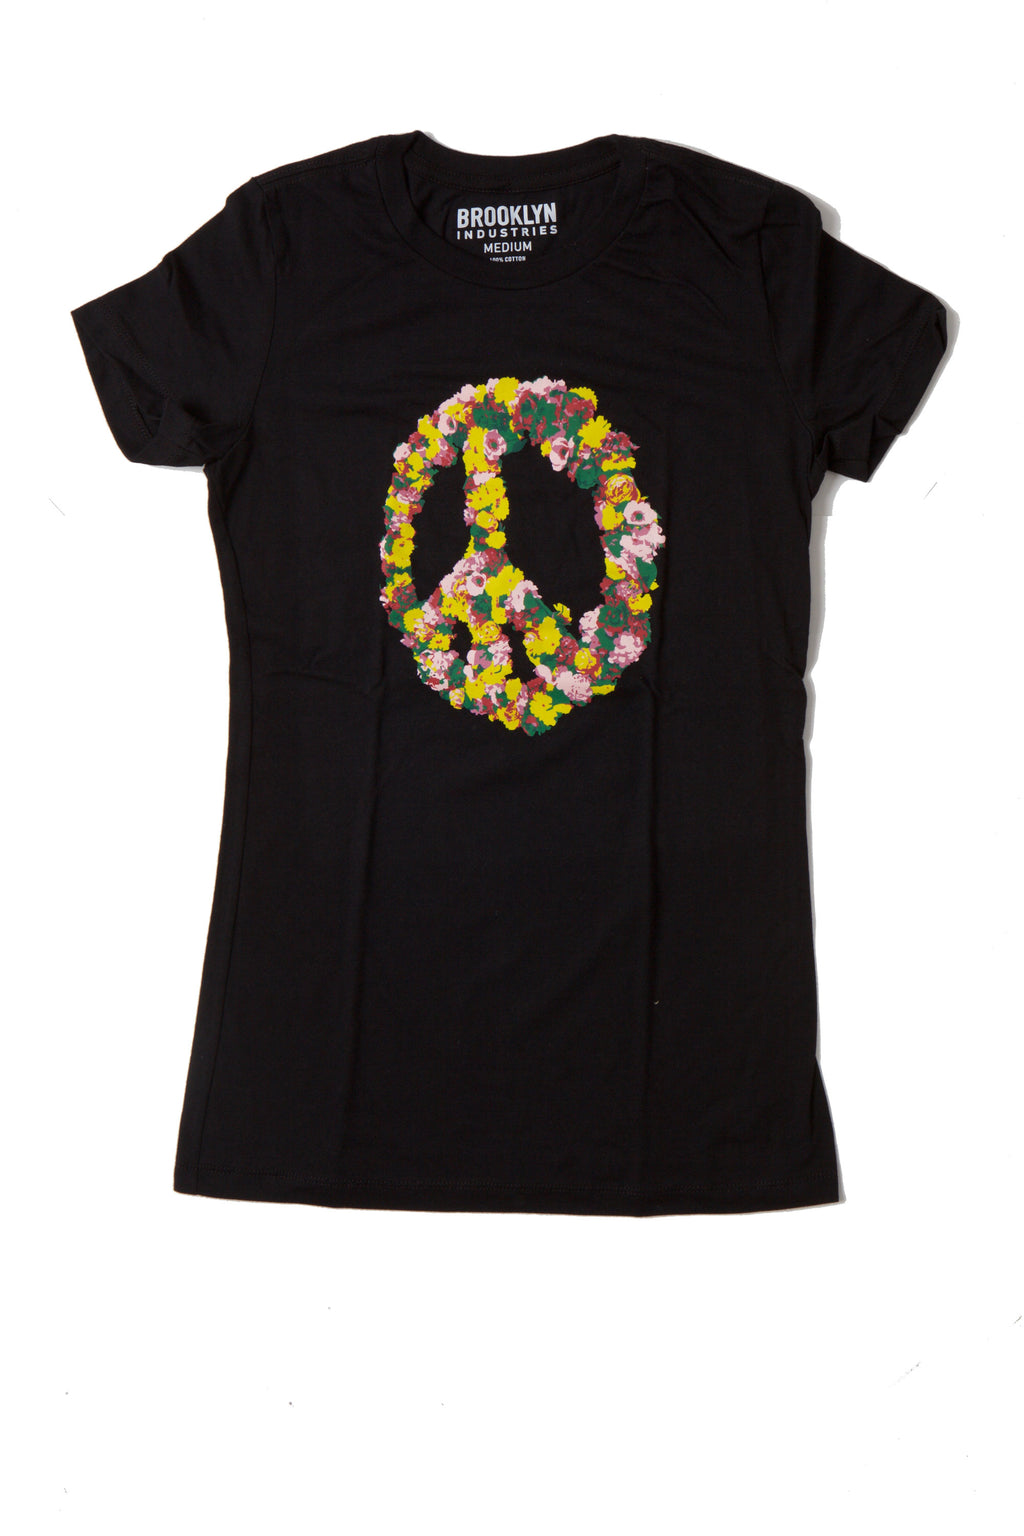 Black T-Shirt With A Colorful Floral Pattern In A Peace Sign Shape